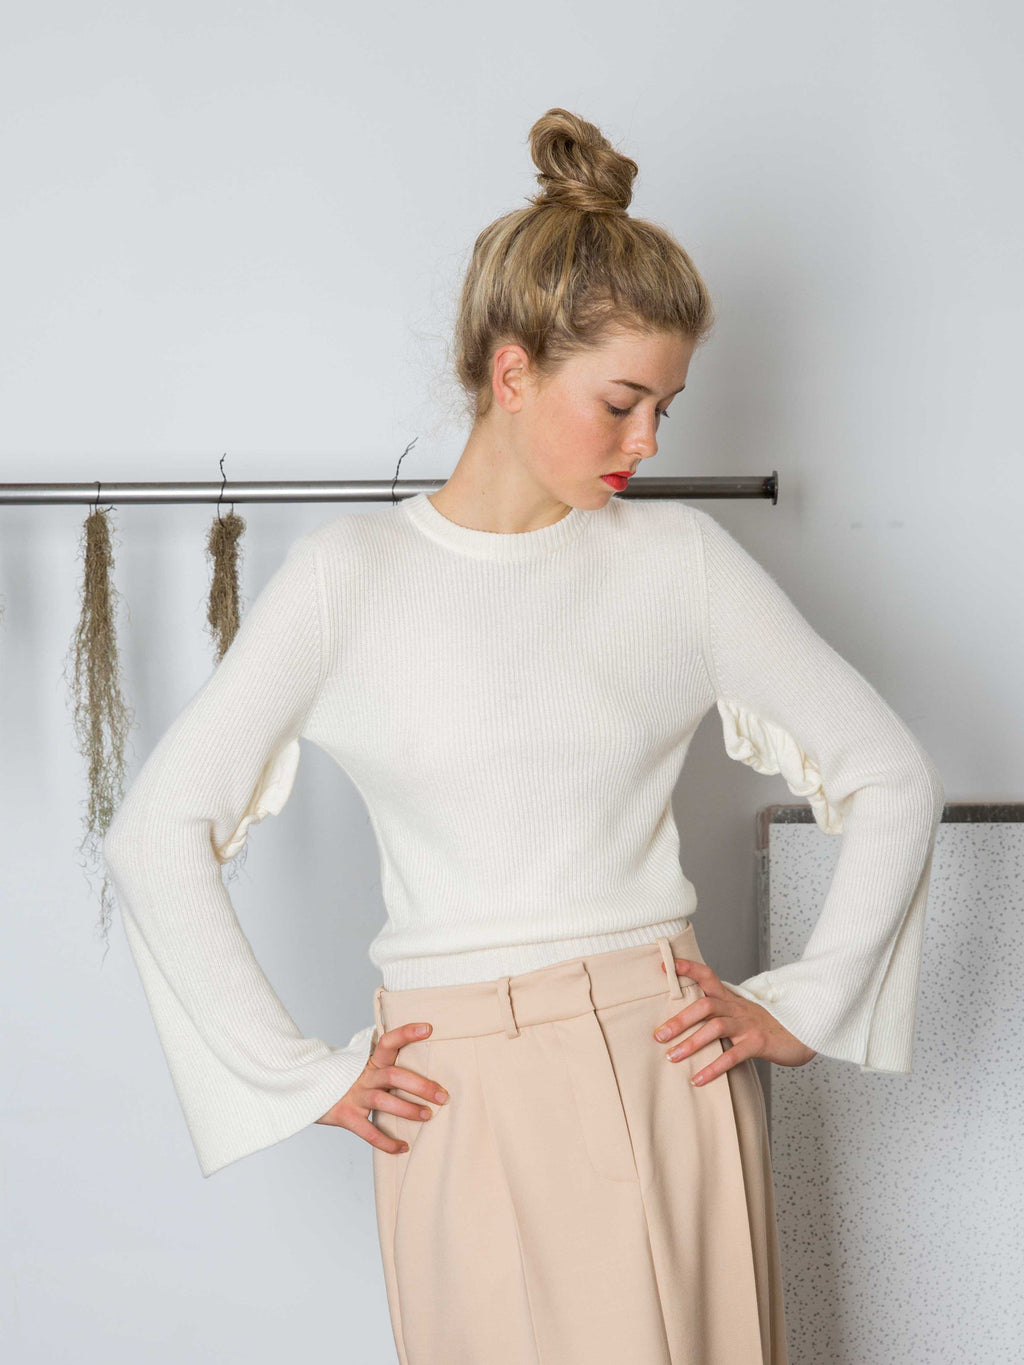 RYAN ROCHE Ruffle Sleeve Cashmere Sweater